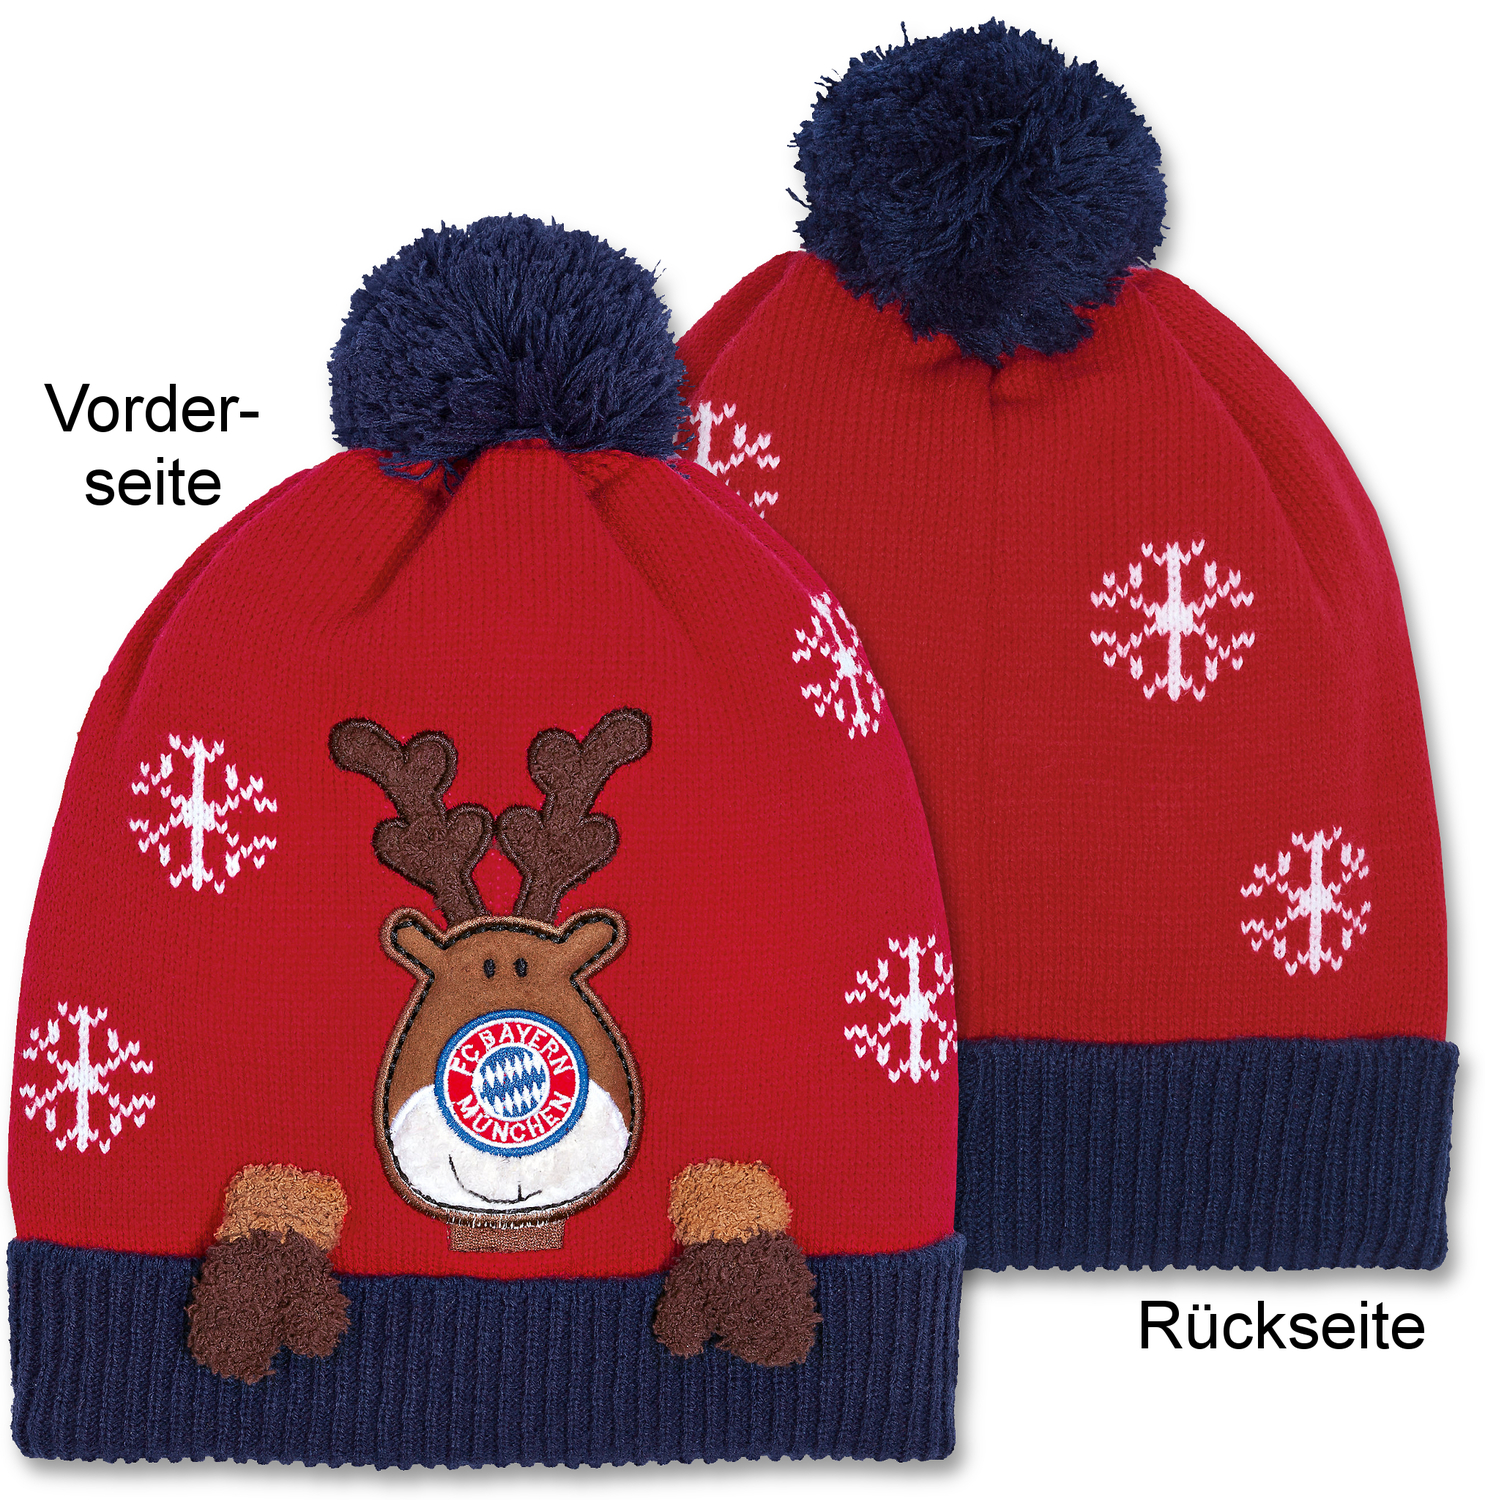 fc bayern m nchen beanie m tze christmas rot. Black Bedroom Furniture Sets. Home Design Ideas